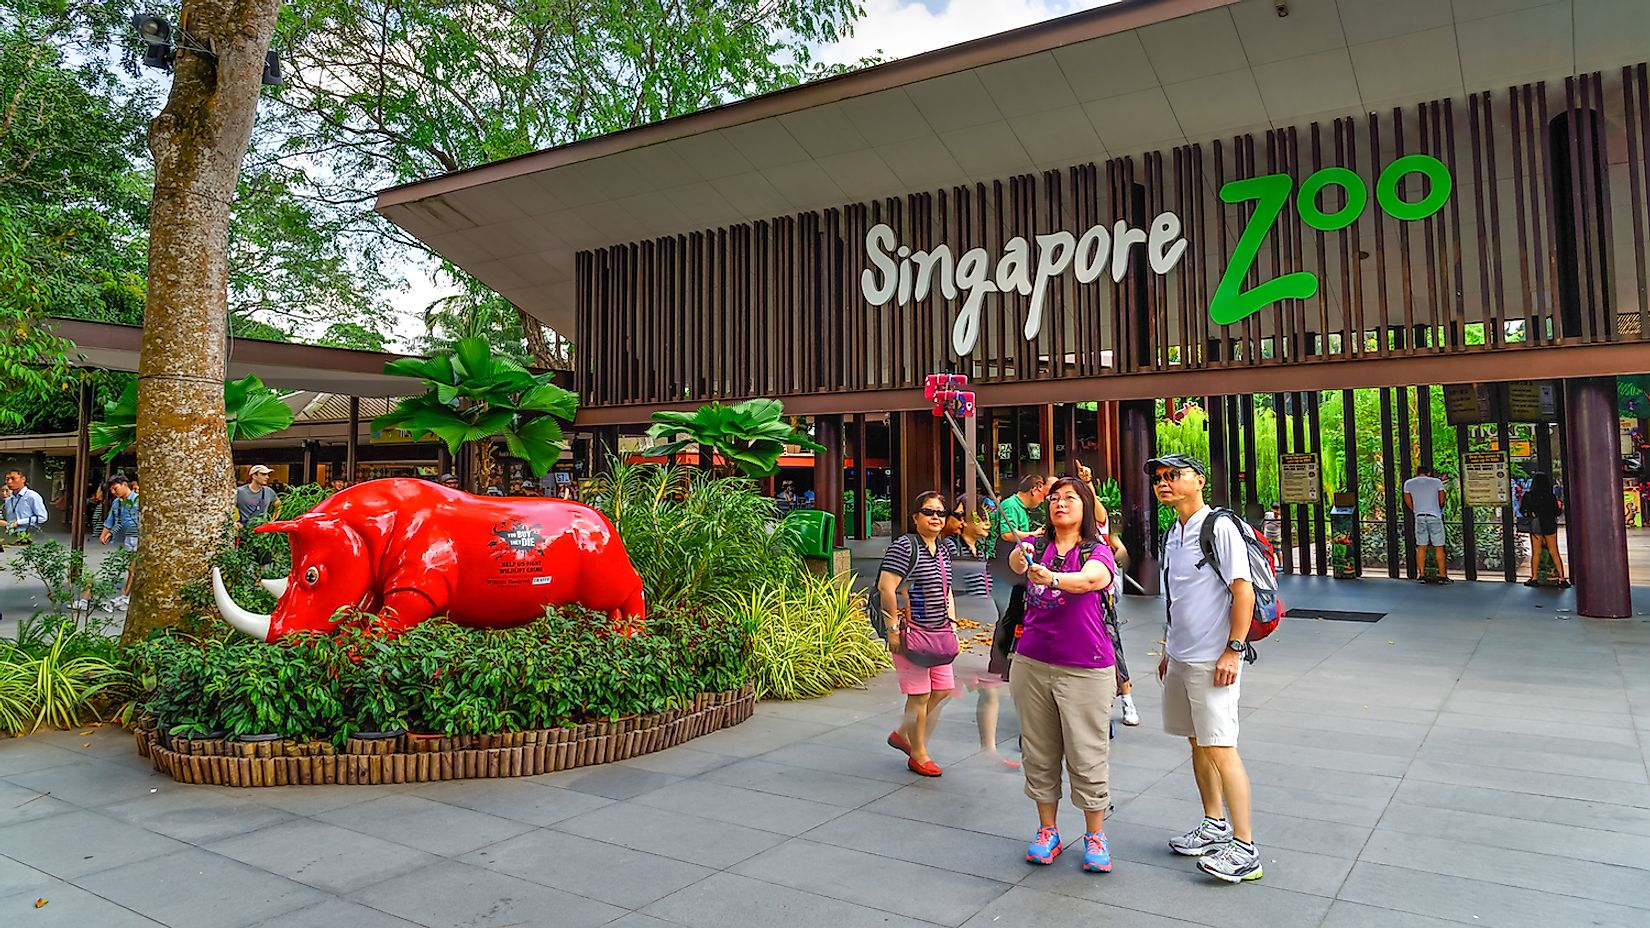 Visitors using smartphone, camera and selfie stick to take photo at the entrance of Singapore Zoo. With 315 species of animal, the zoo attracts 1.7 million visitors each year. Image credit: Trong Nguyen/Shutterstock.com